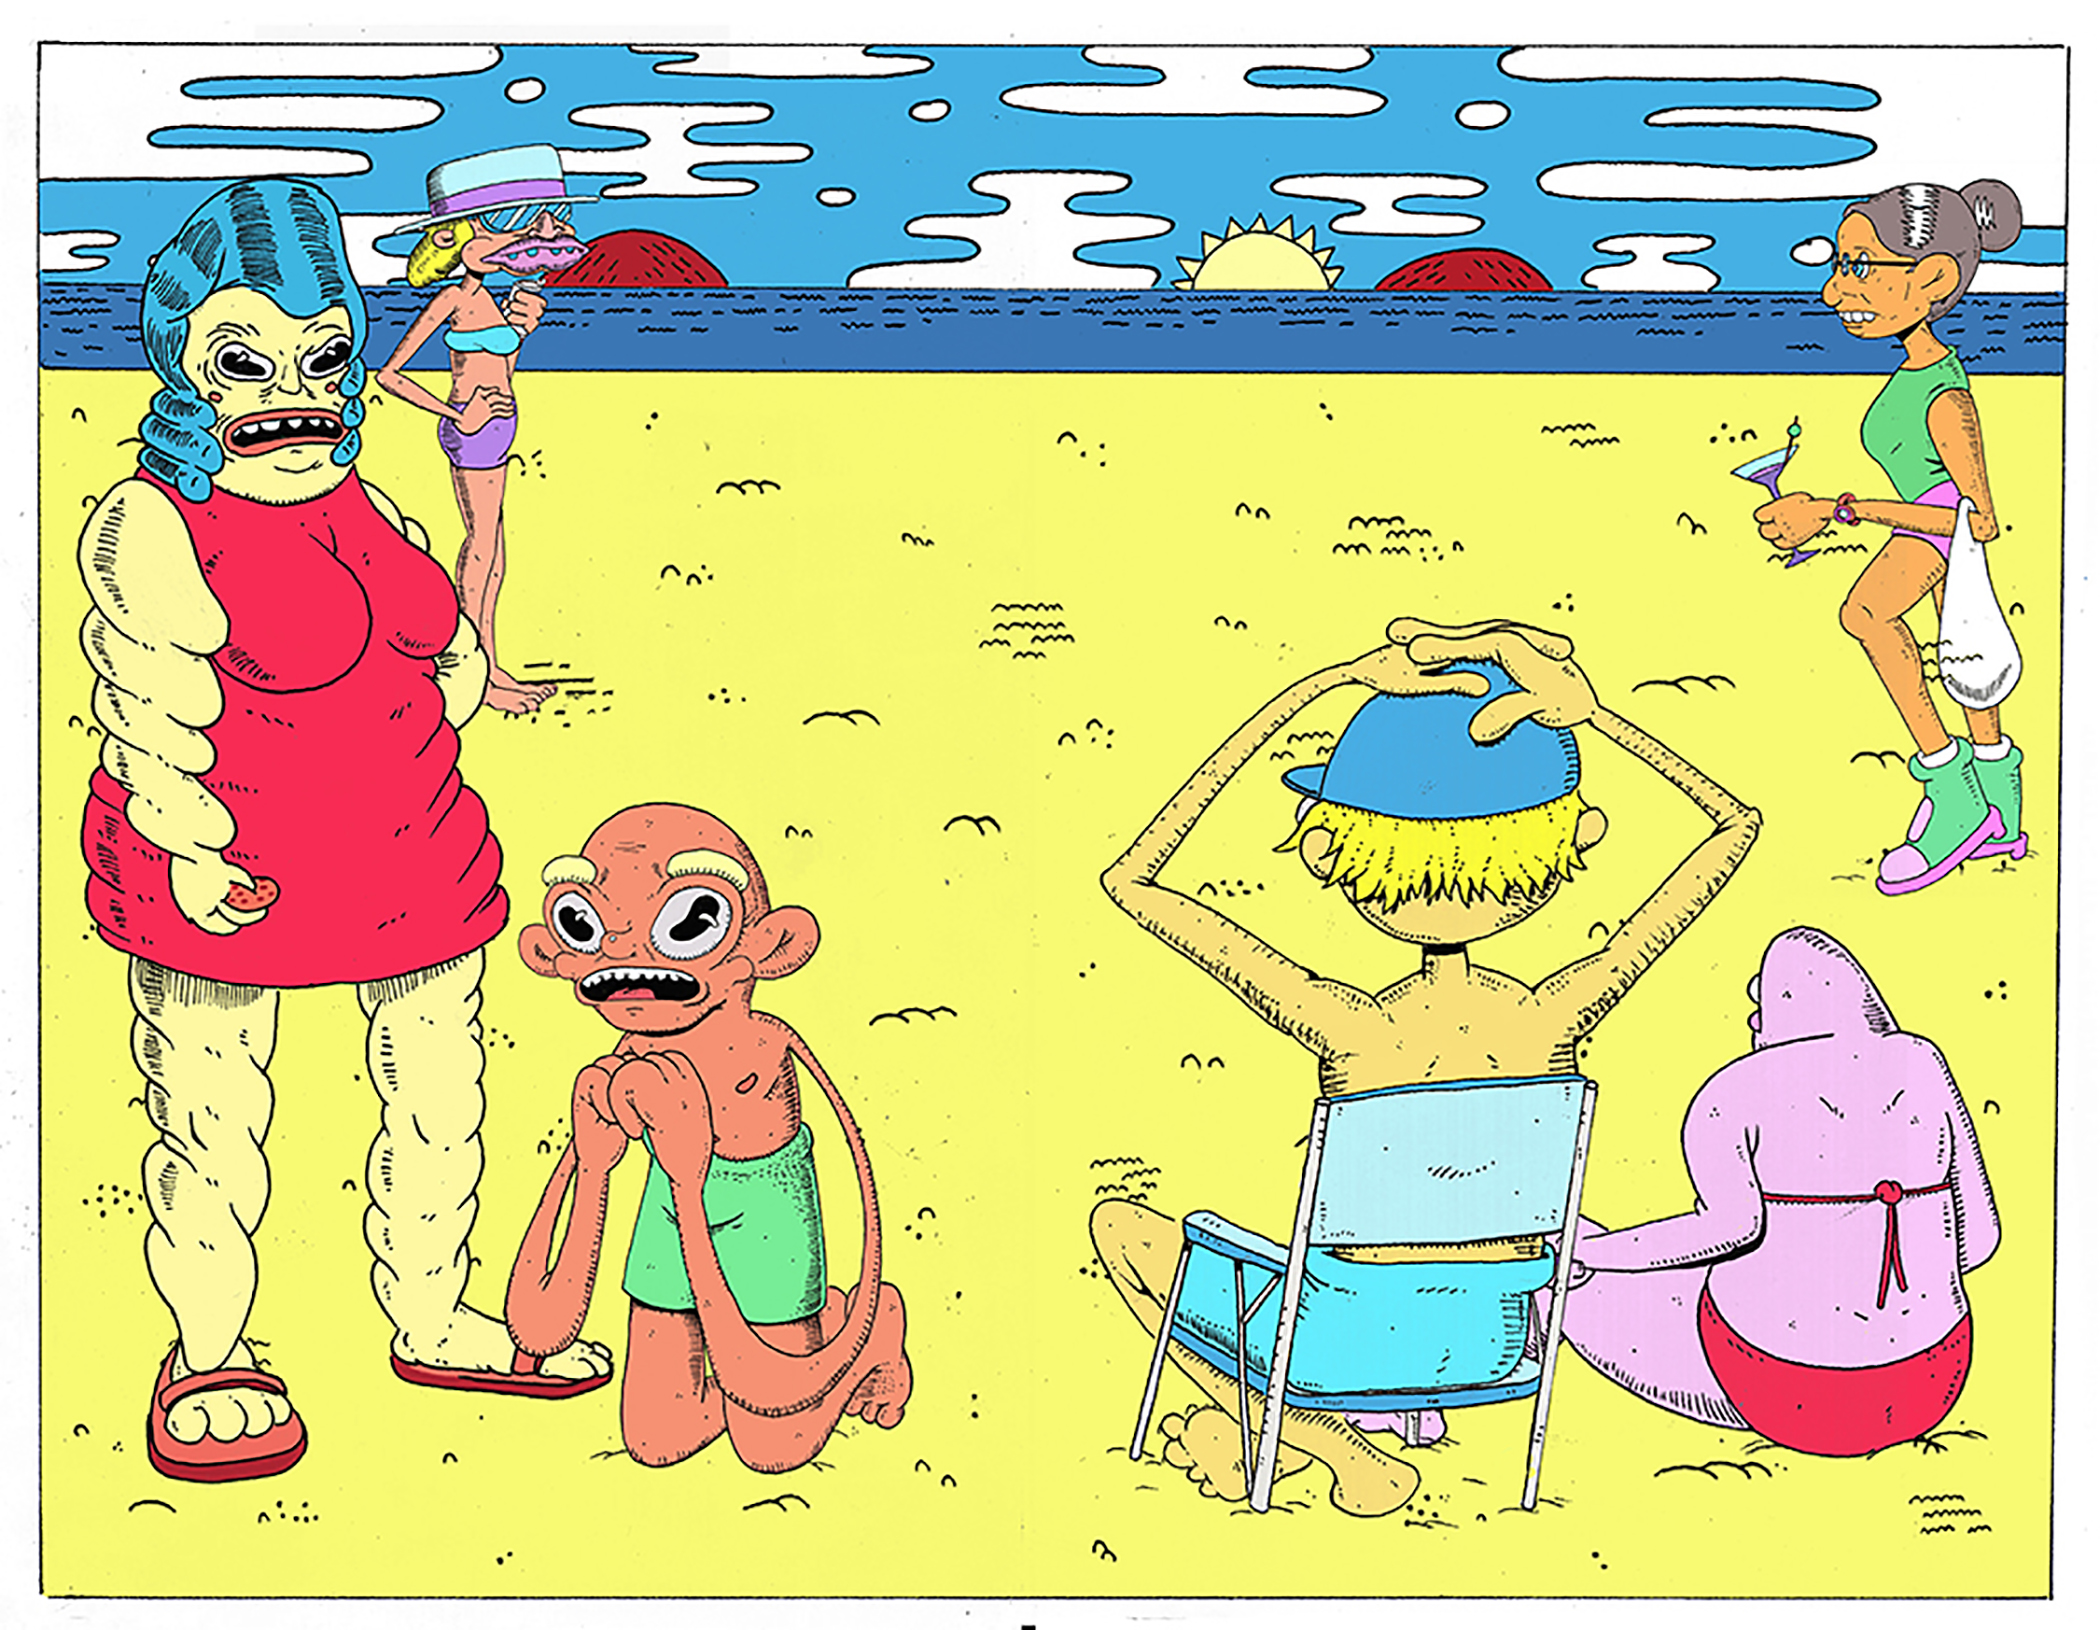 Illustration of characters at the beach observing the scene